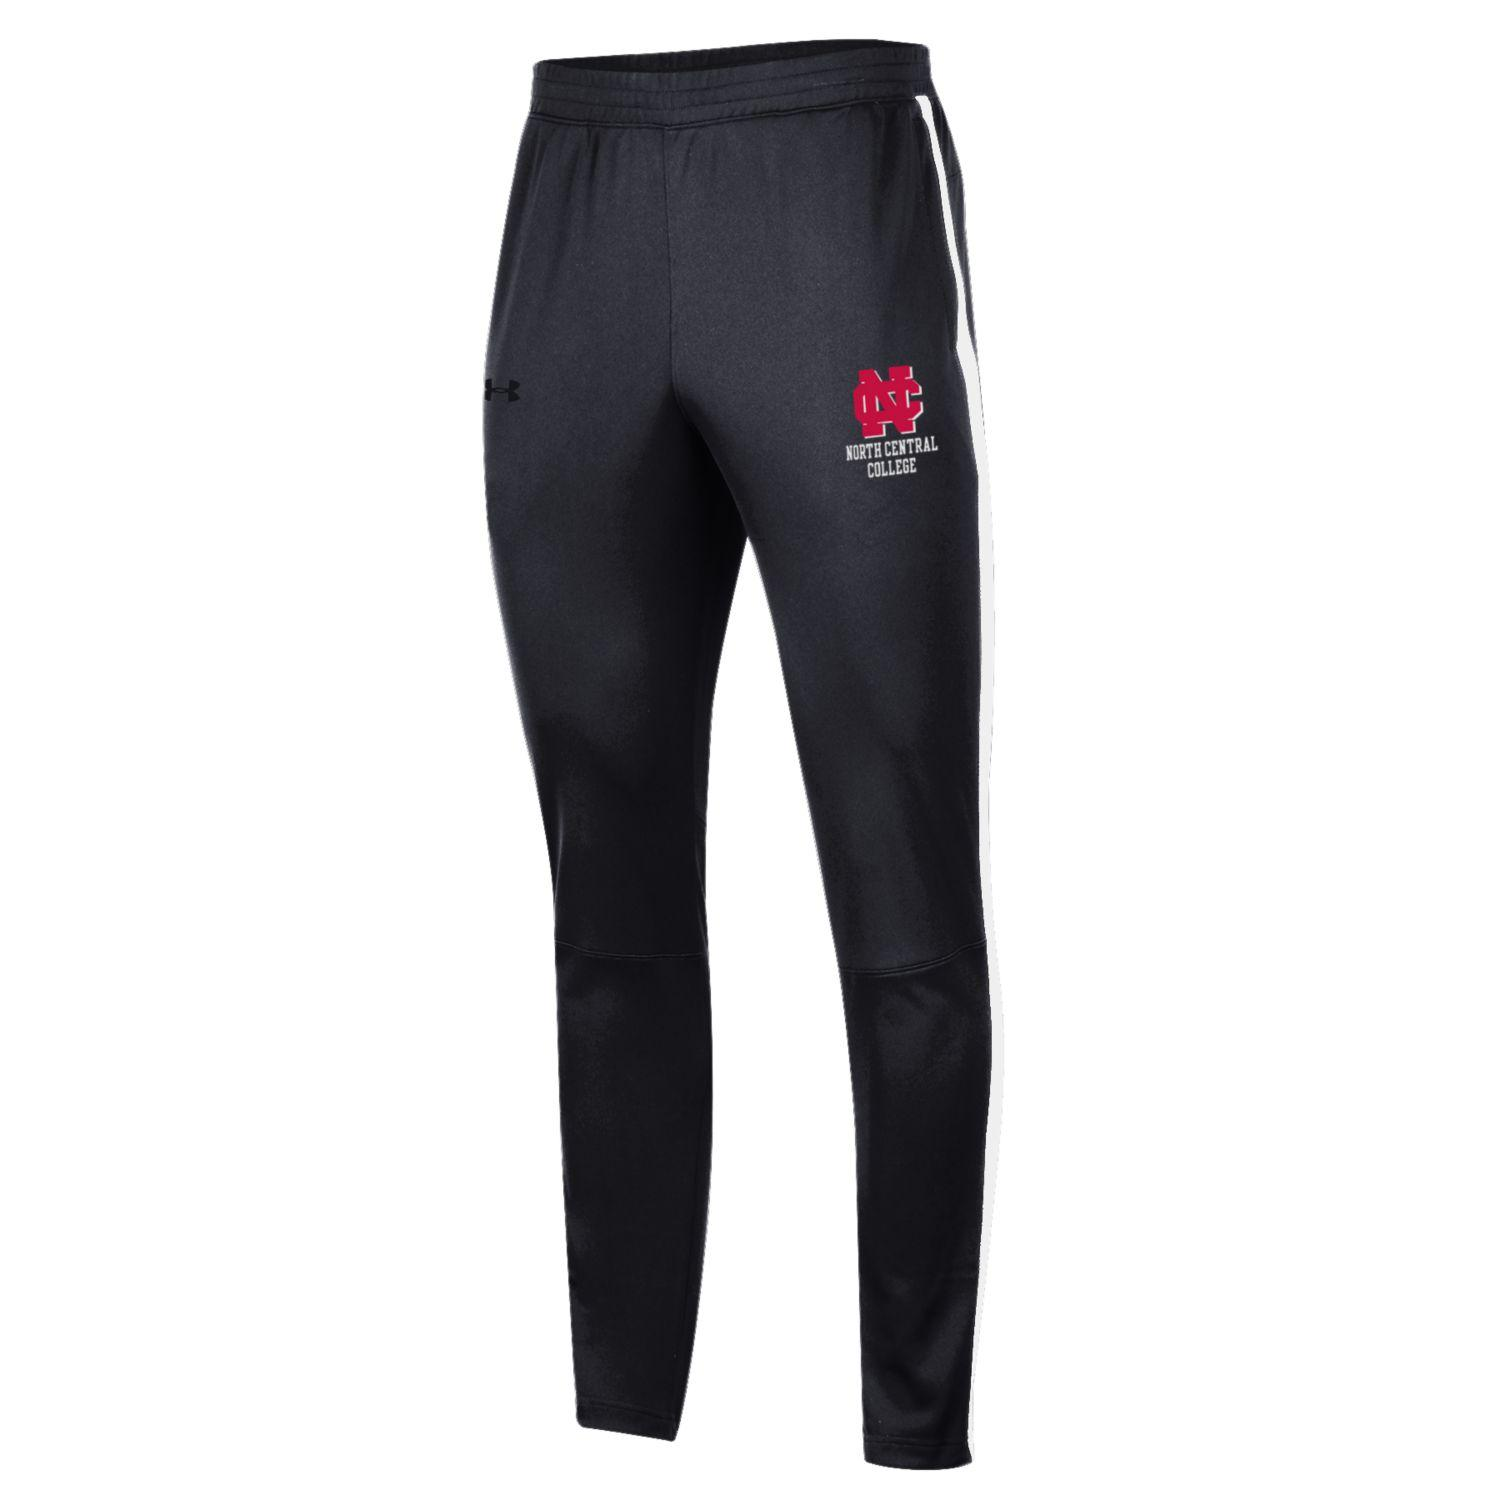 Image for the Sportstyle Track Pant By Under Armour product